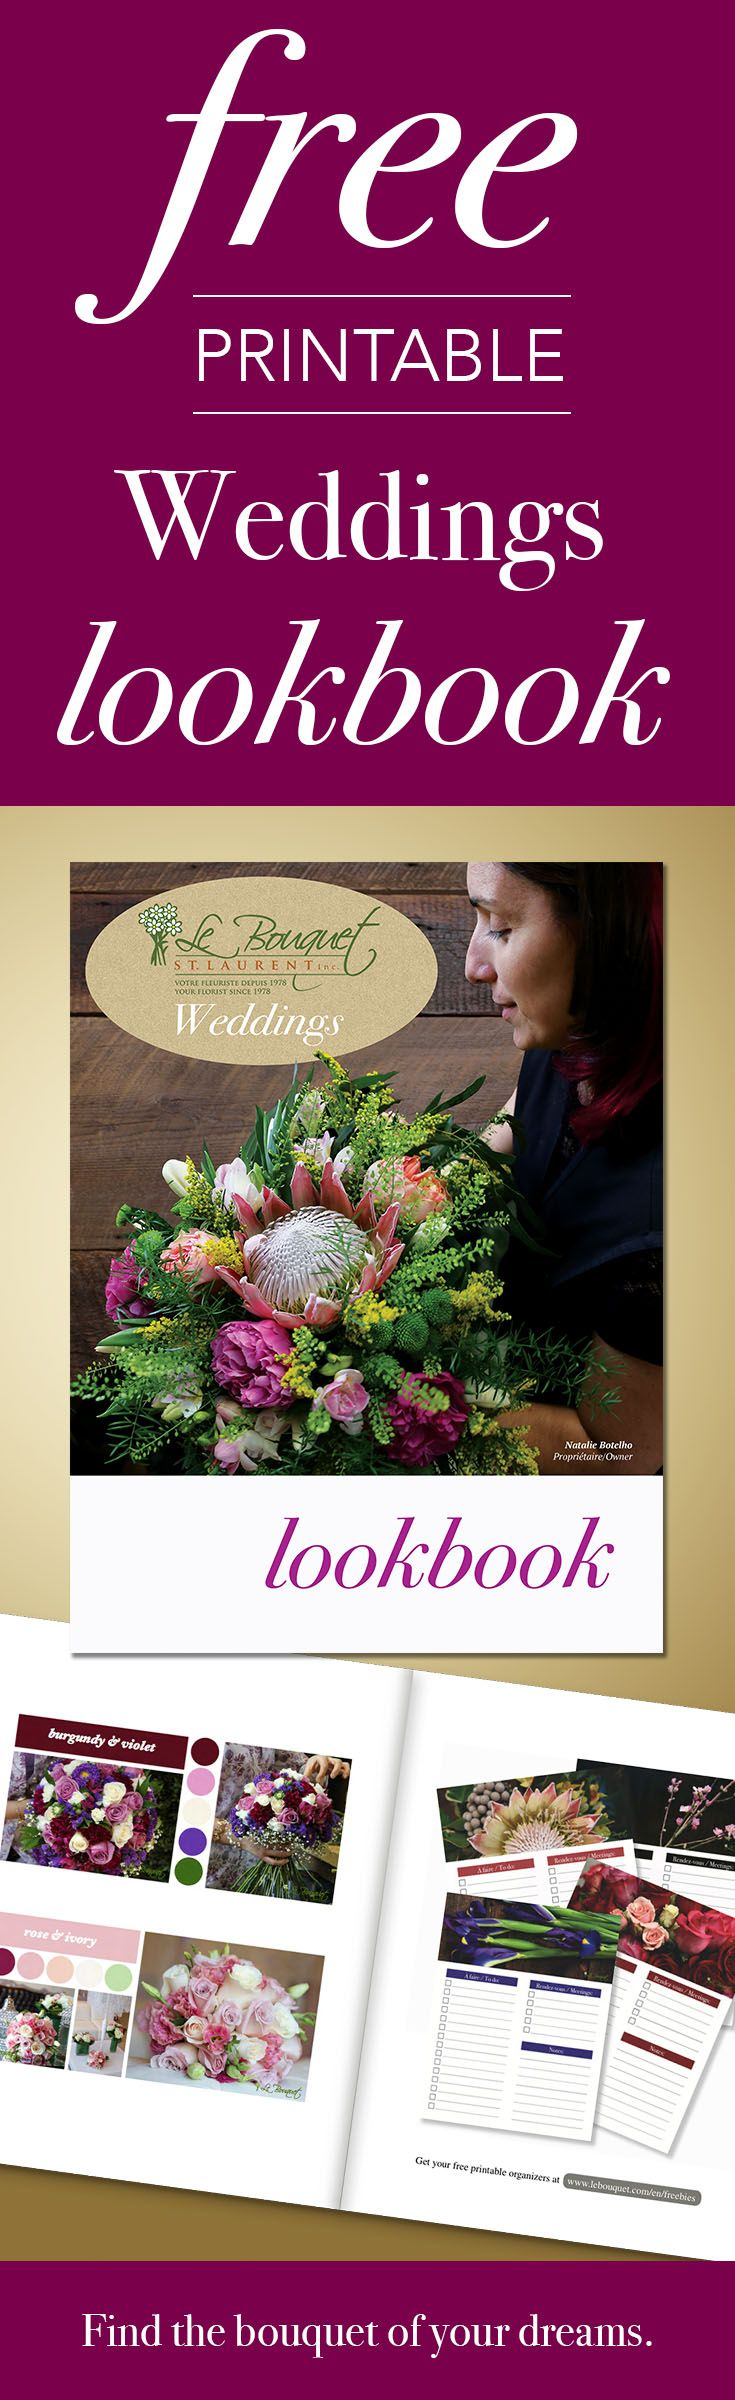 Download your free copy of Montreal based florist Le Bouquet St Laurent's wedding lookbook!  Find the wedding bouquet of your dreams!